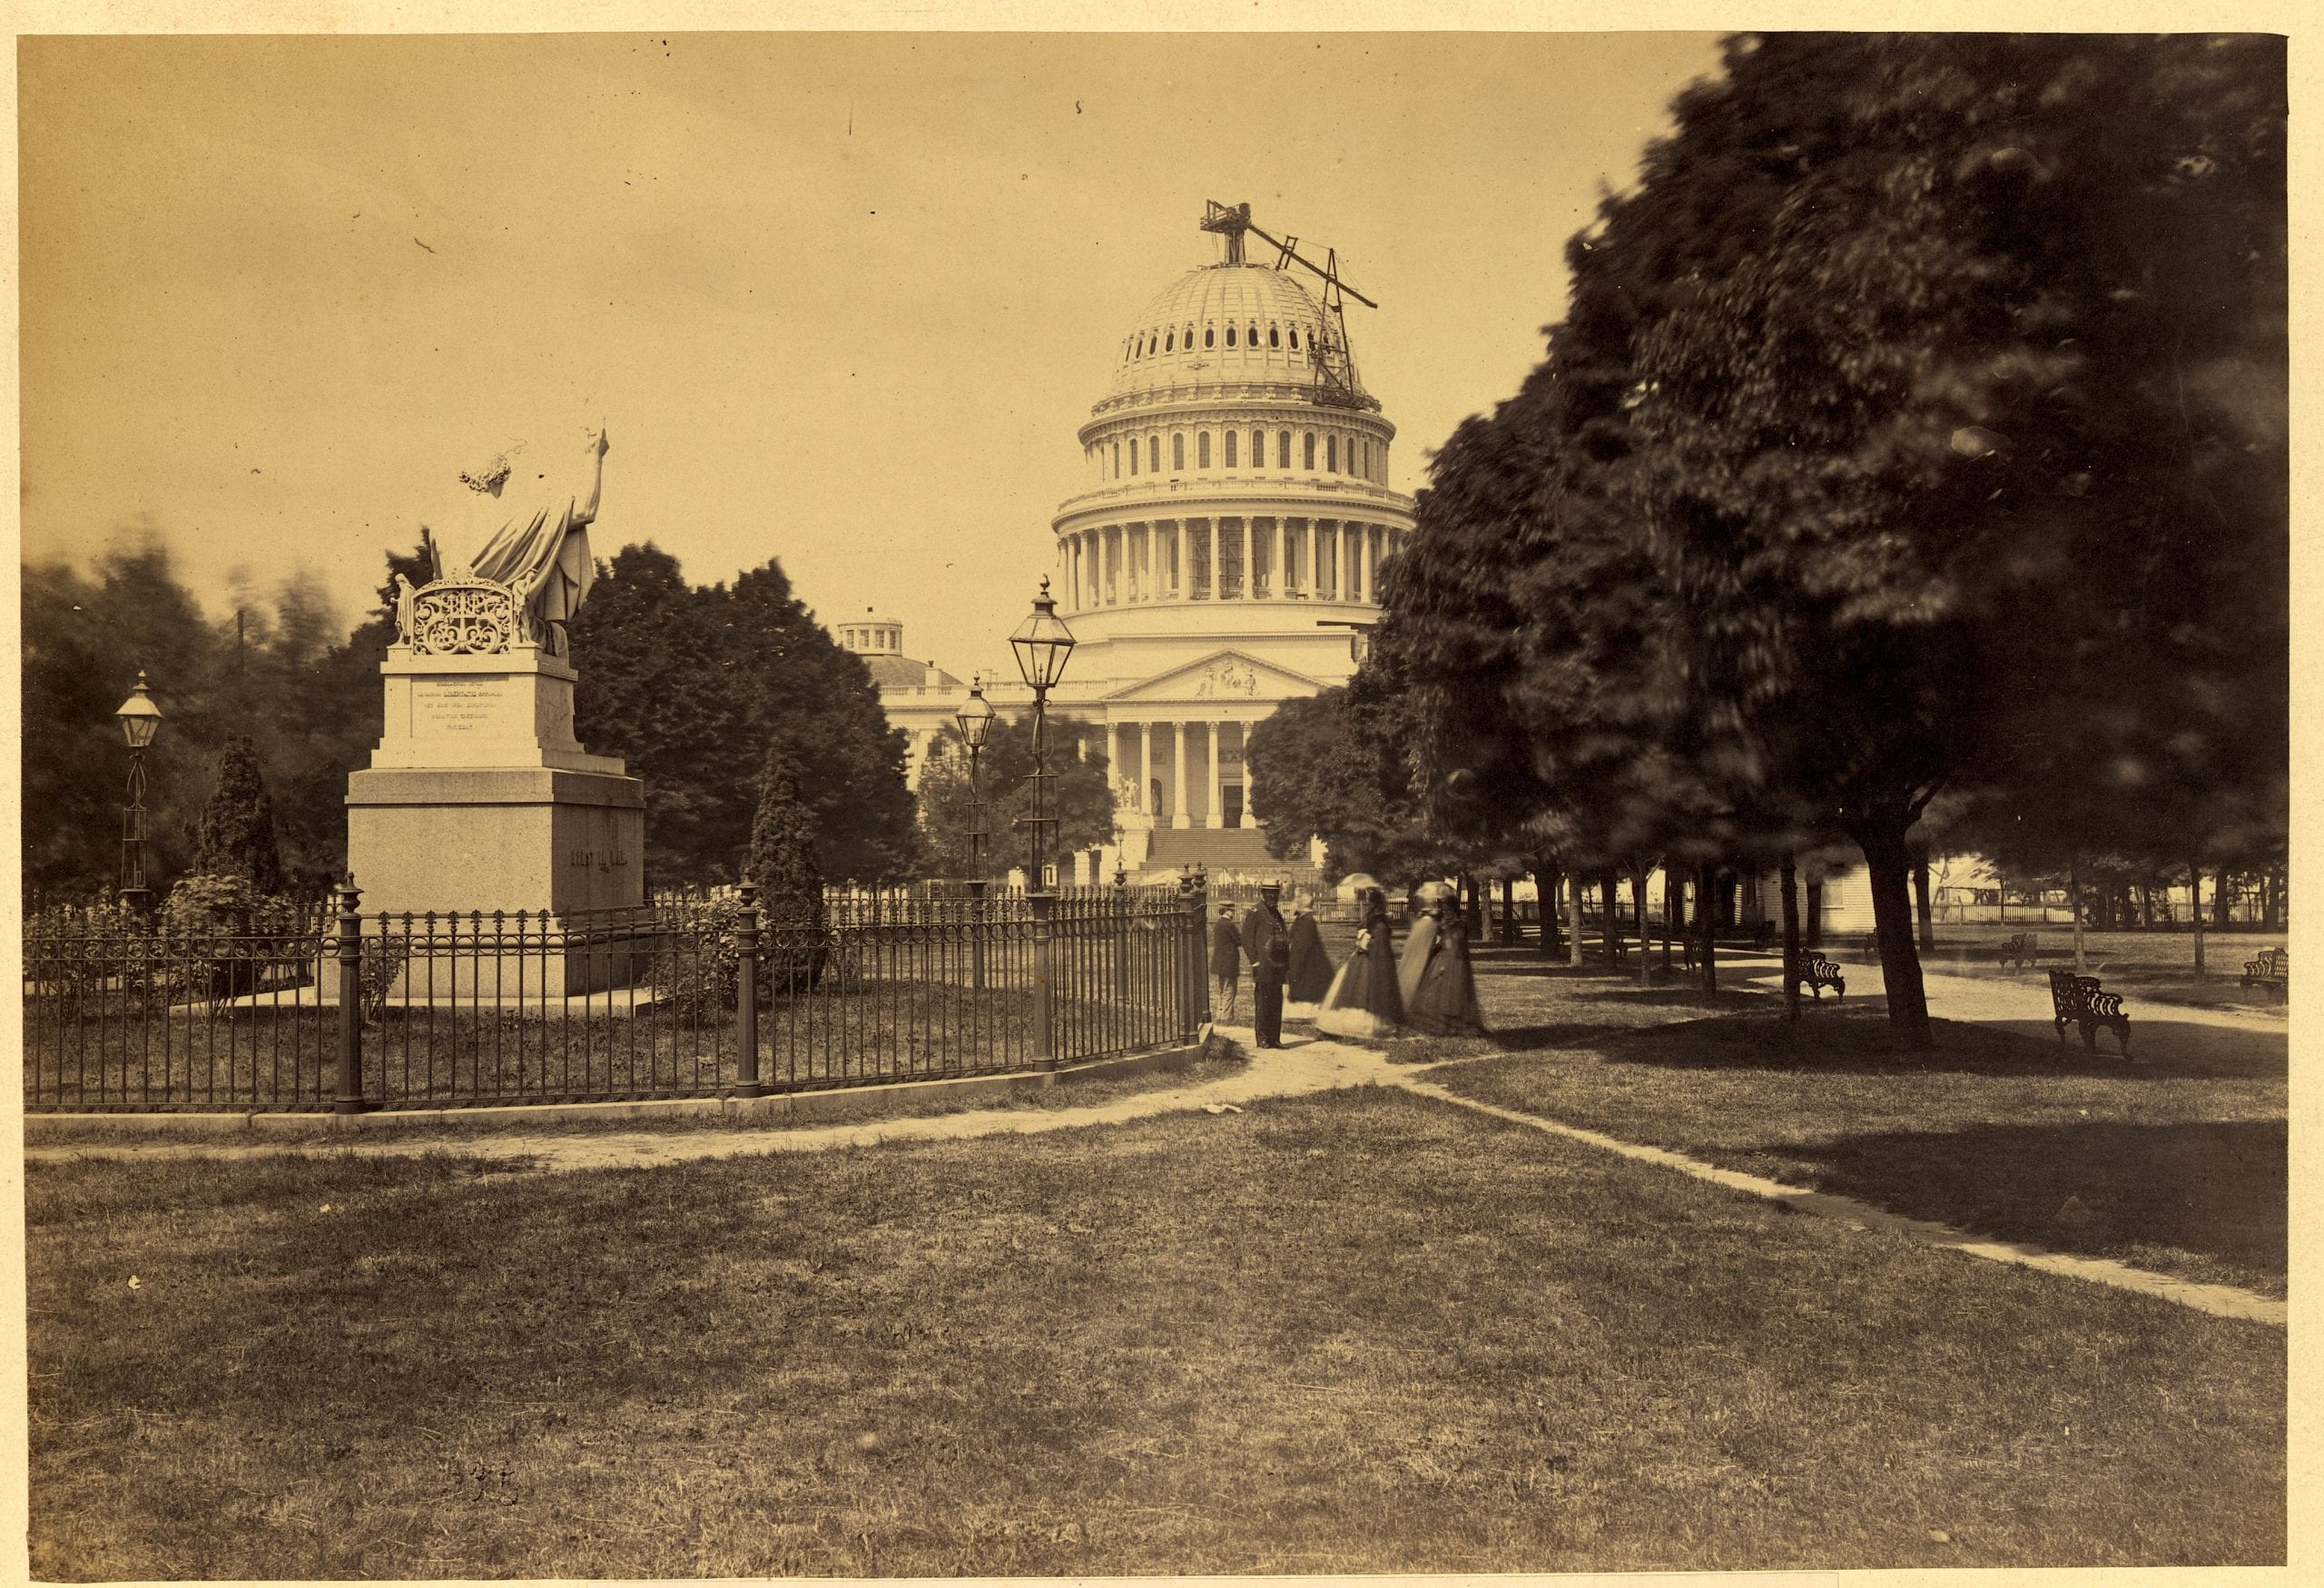 east front of the Capitol Building